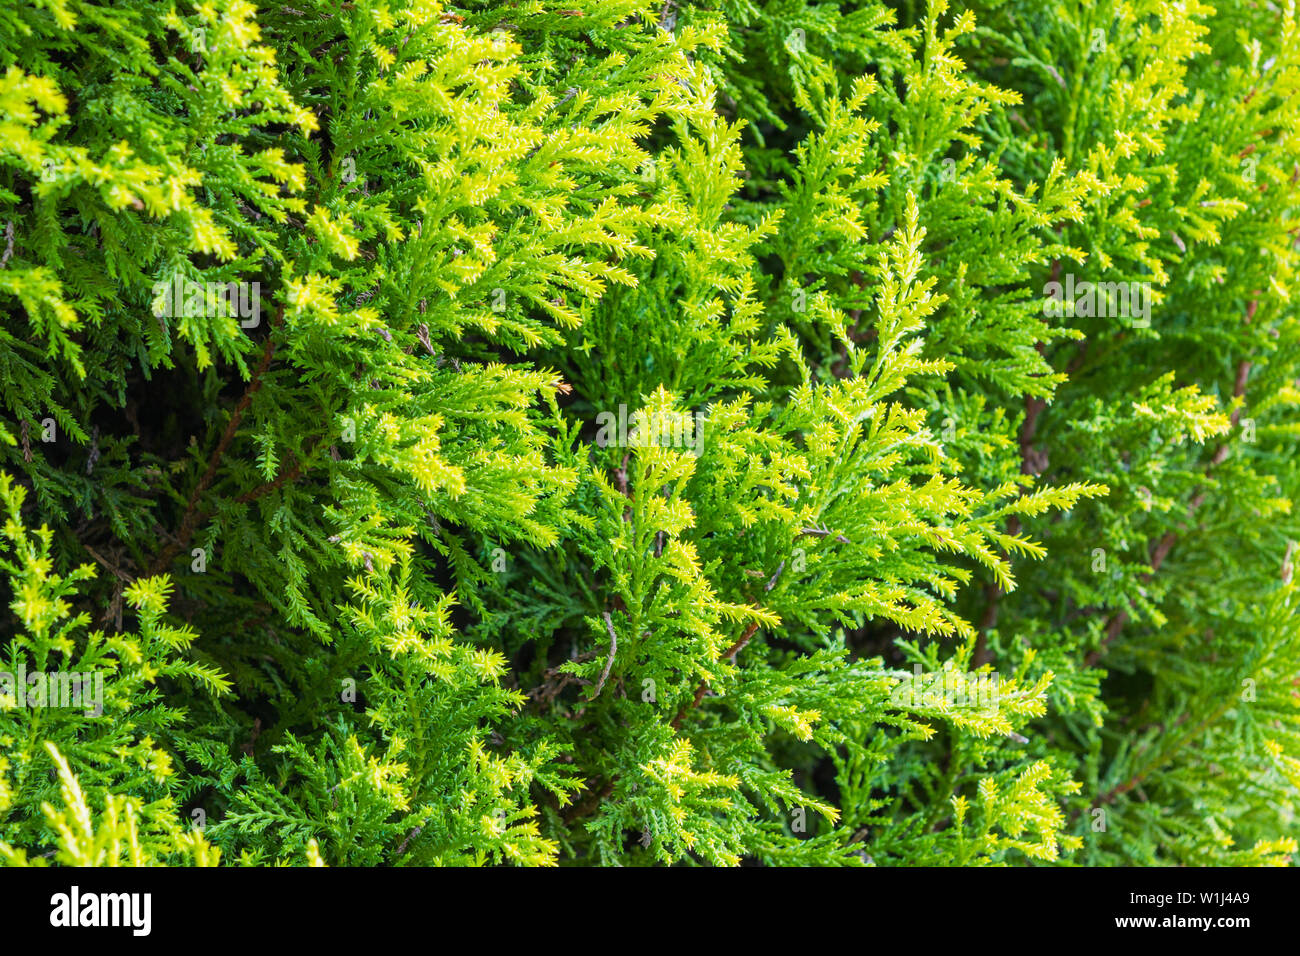 Thuja green texture natural background. - Stock Image